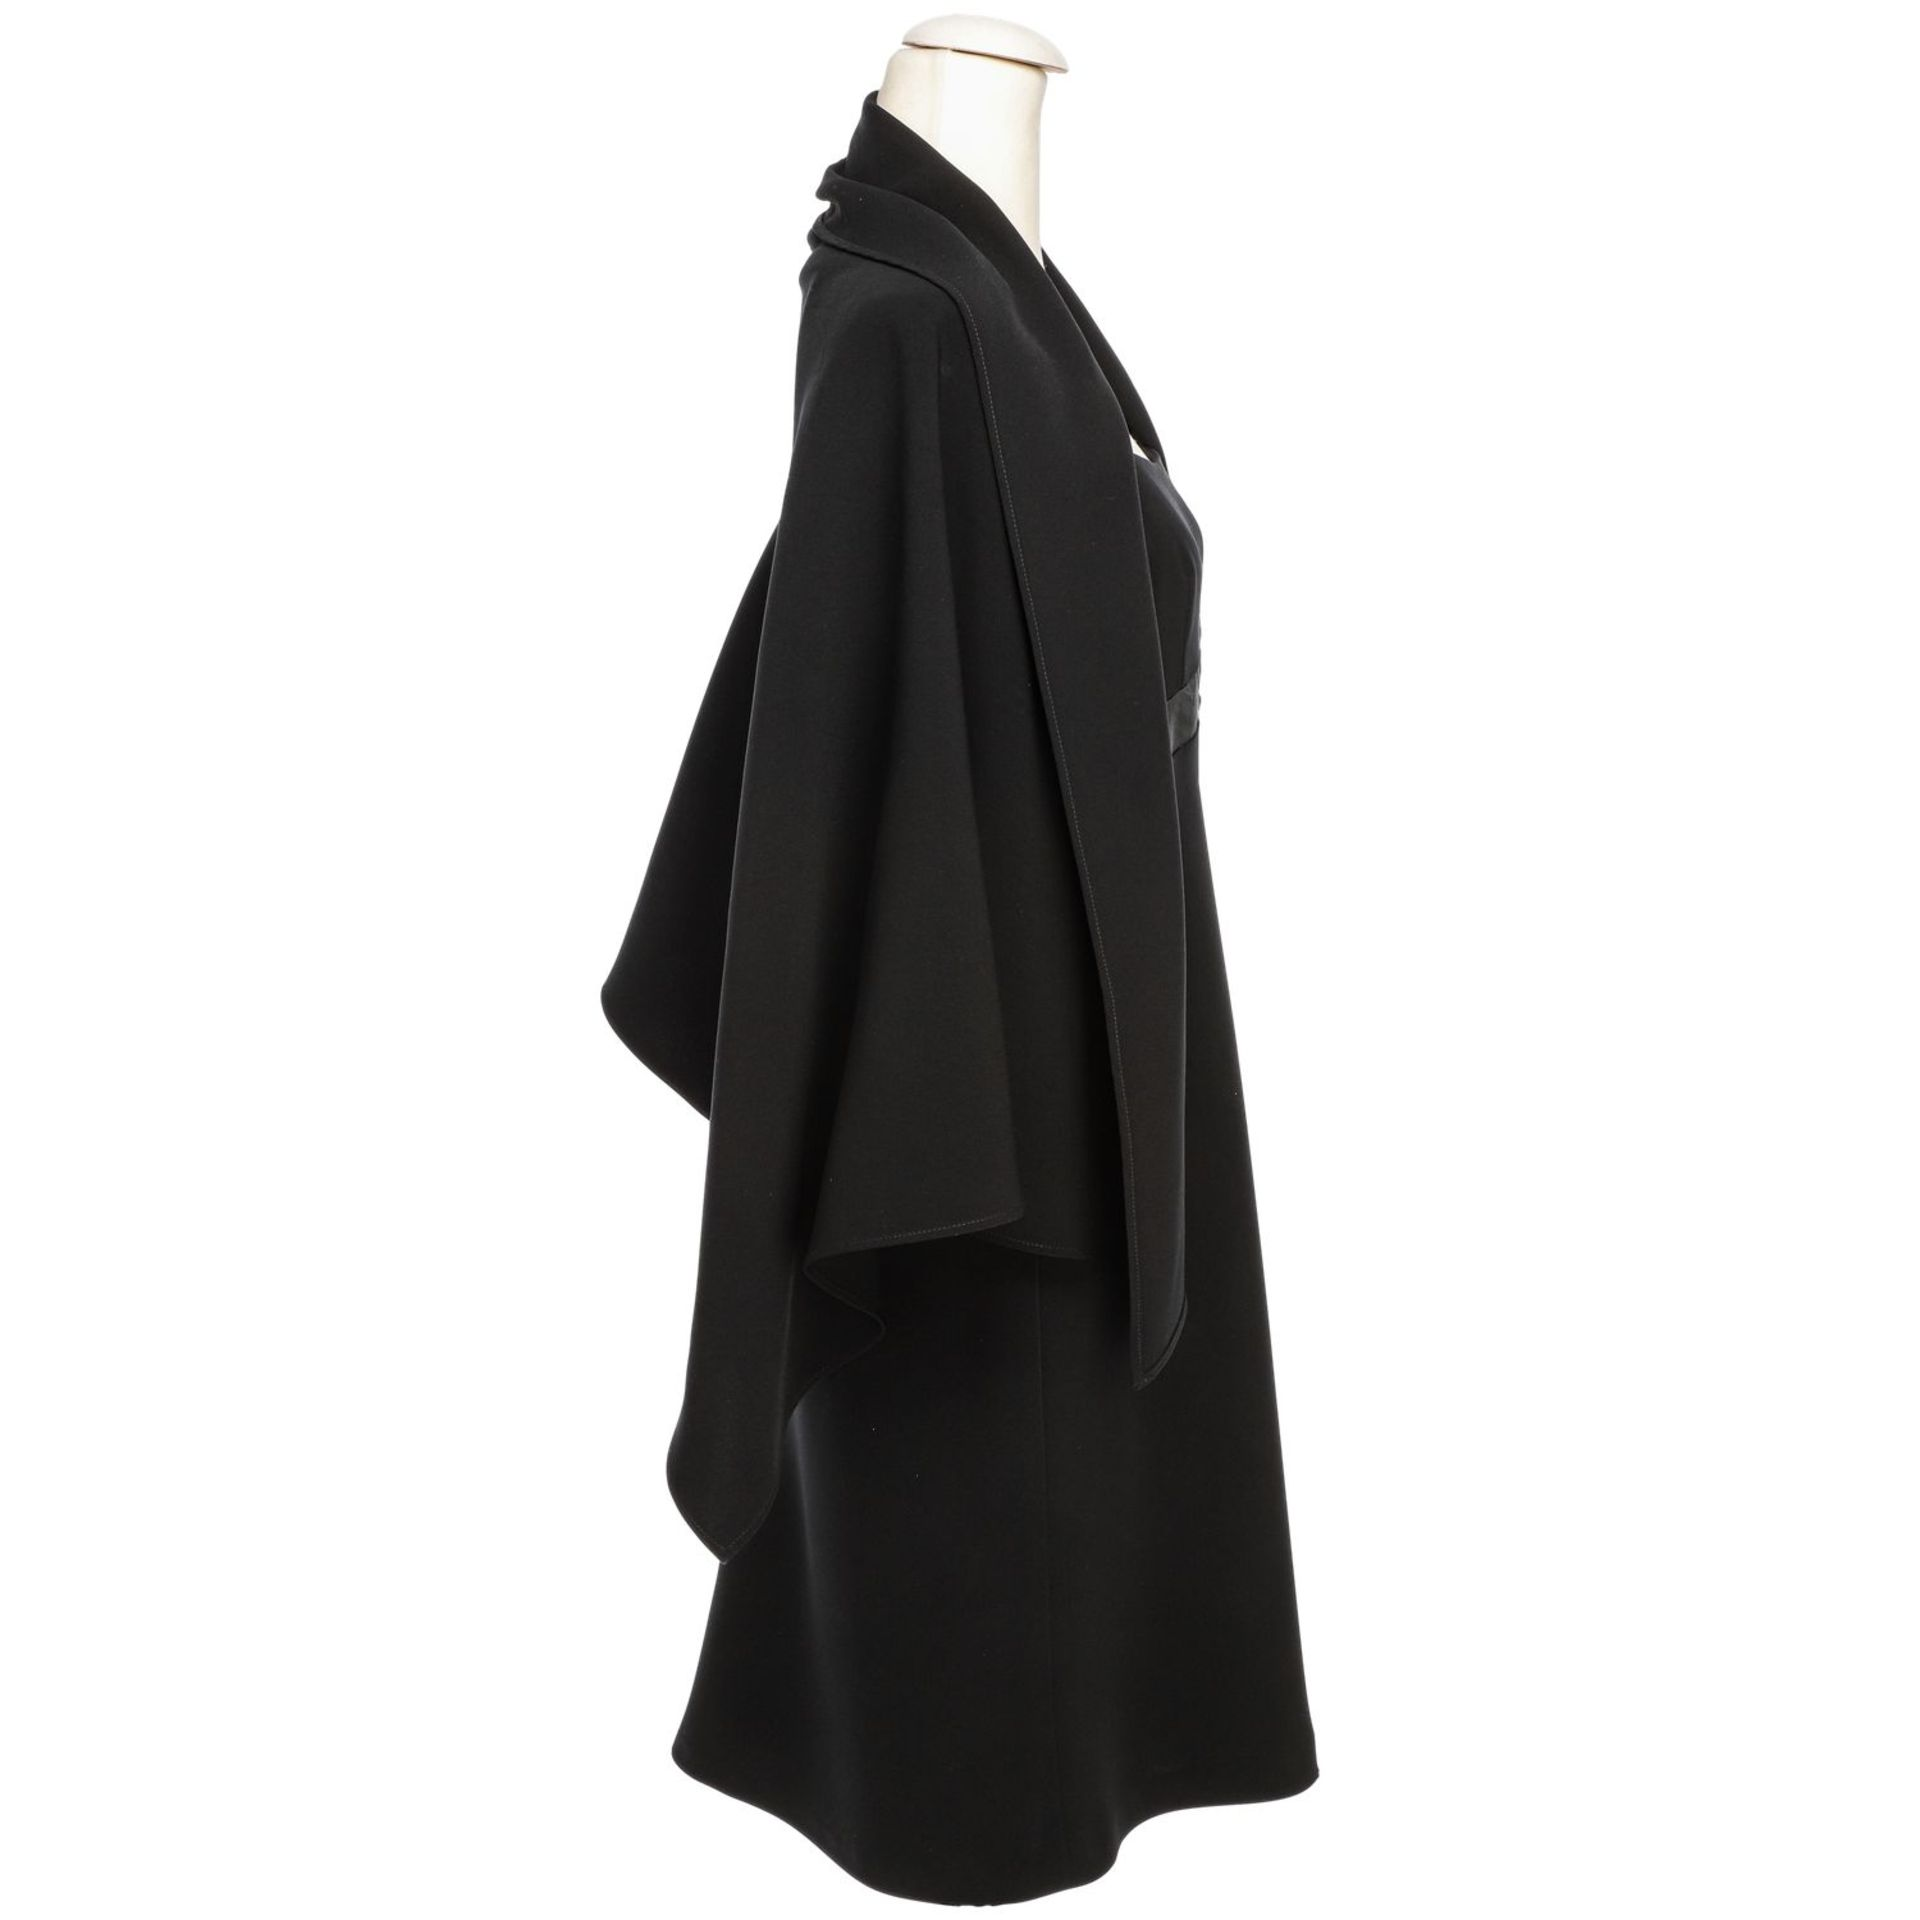 MOSCHINO COUTURE VINTAGE Kleid, Gr. 40. - Image 3 of 4